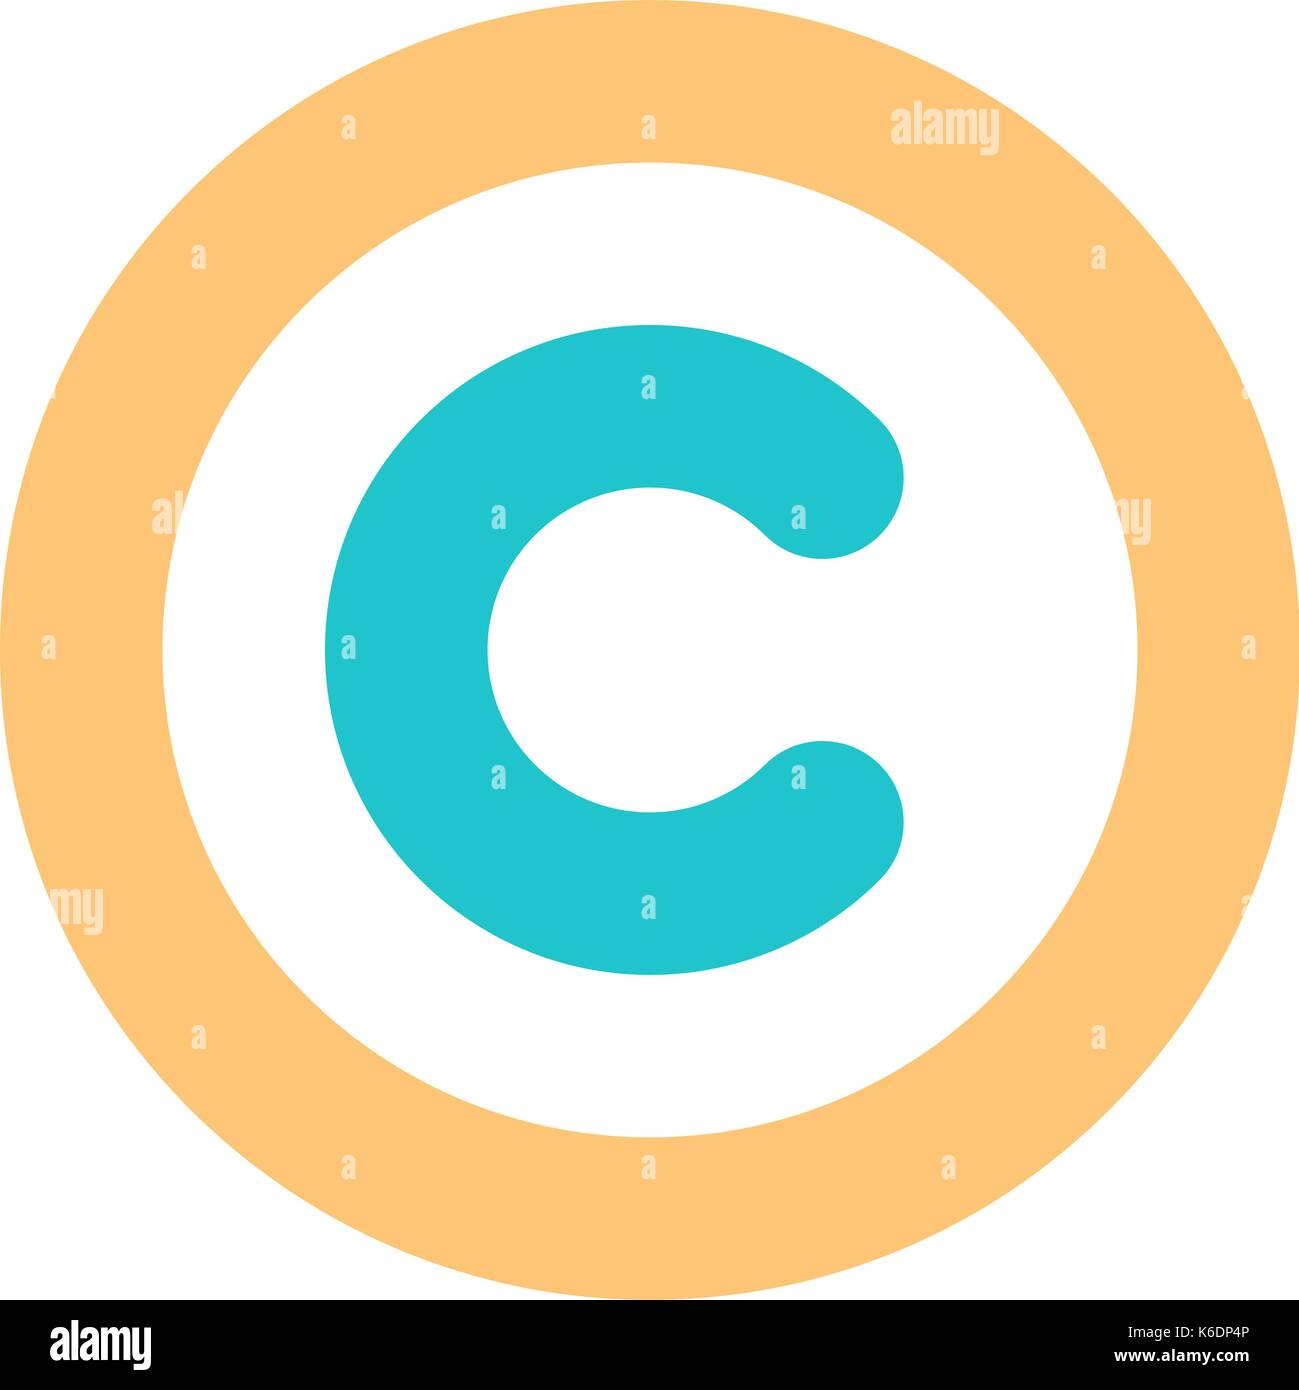 Trademark Copyright Stock Vector Images Alamy